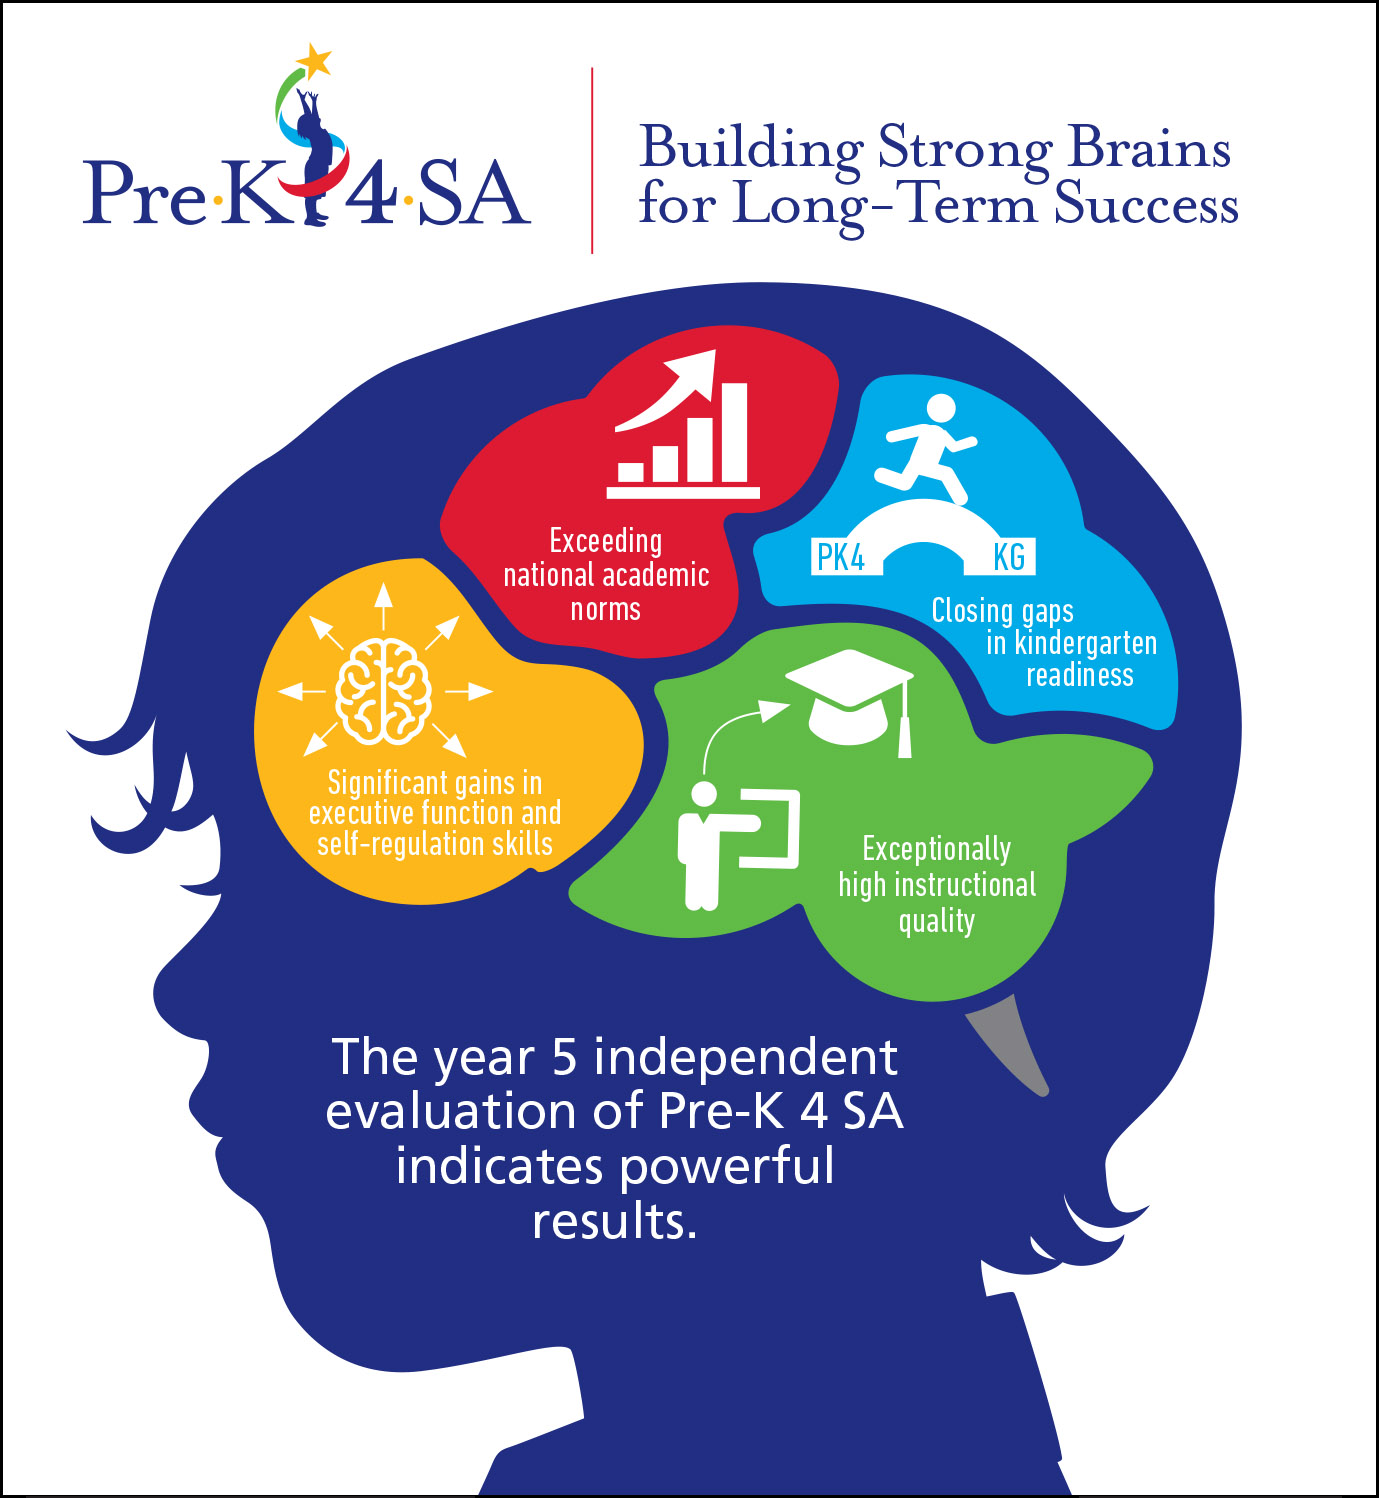 Pre-K 4 SA Building Strong Brains for Long-Term Success